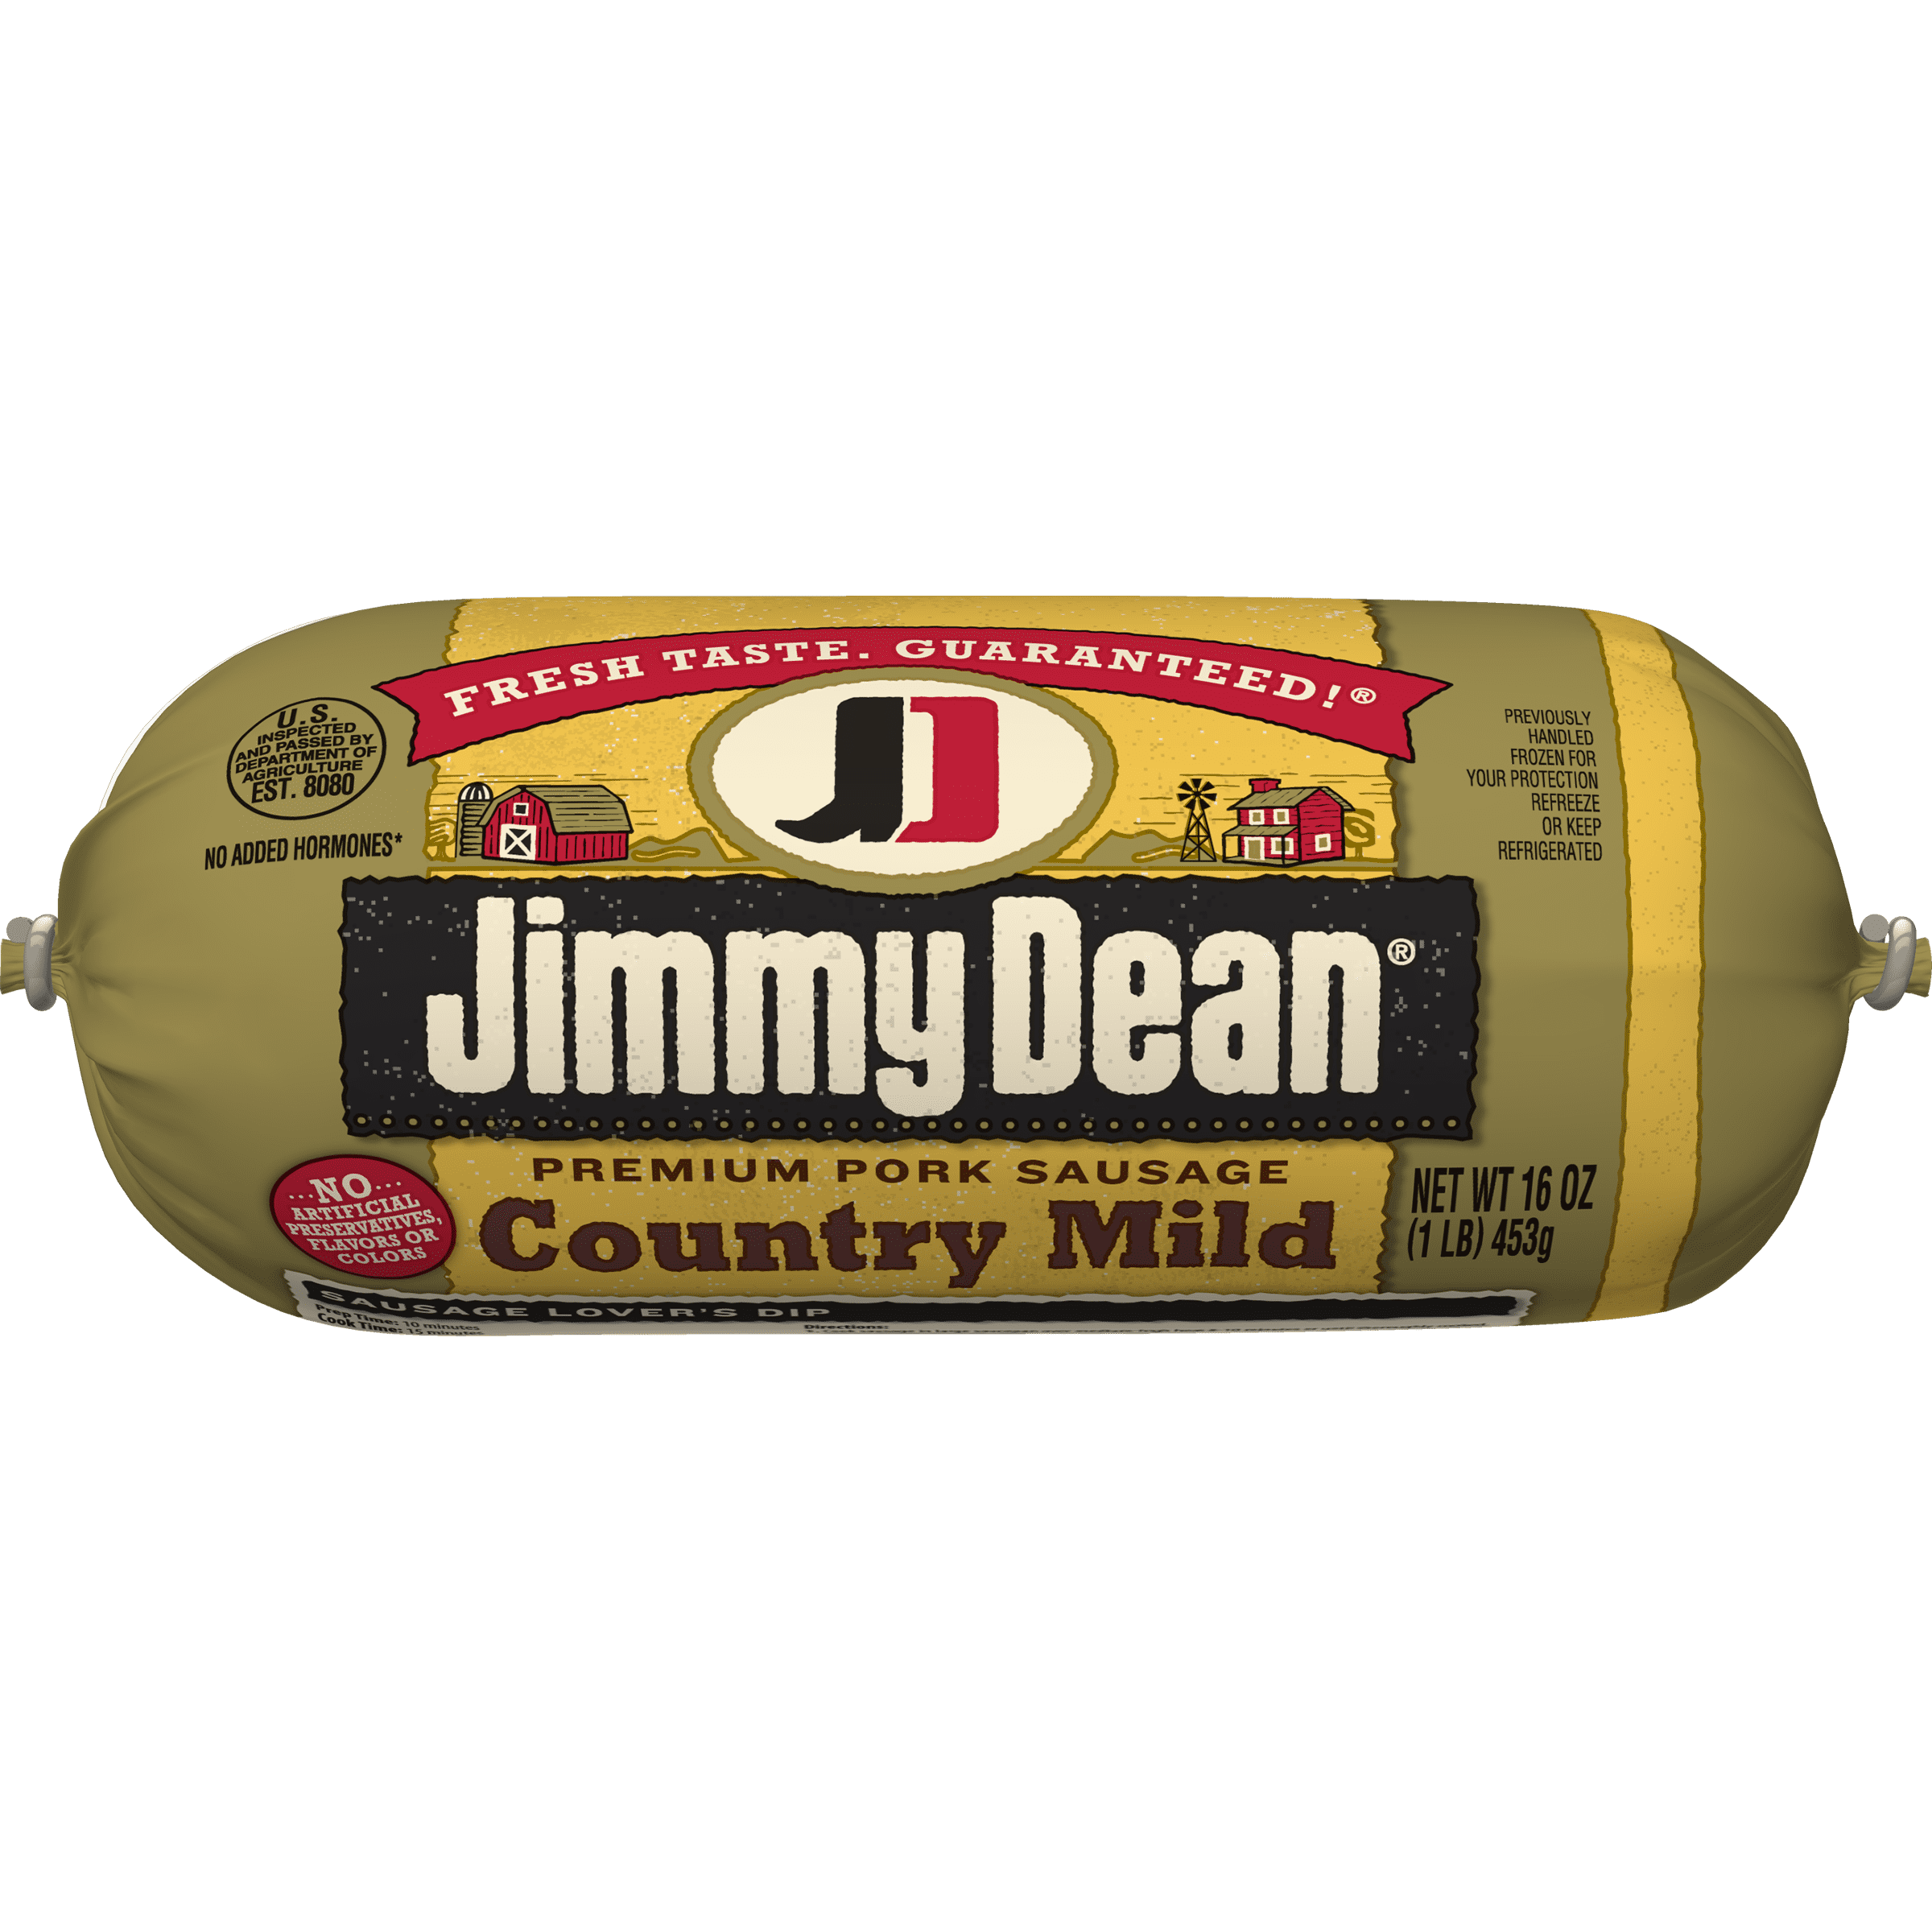 Jimmy Dean Premium Pork Country Mild Sausage Roll, 16 Oz ...